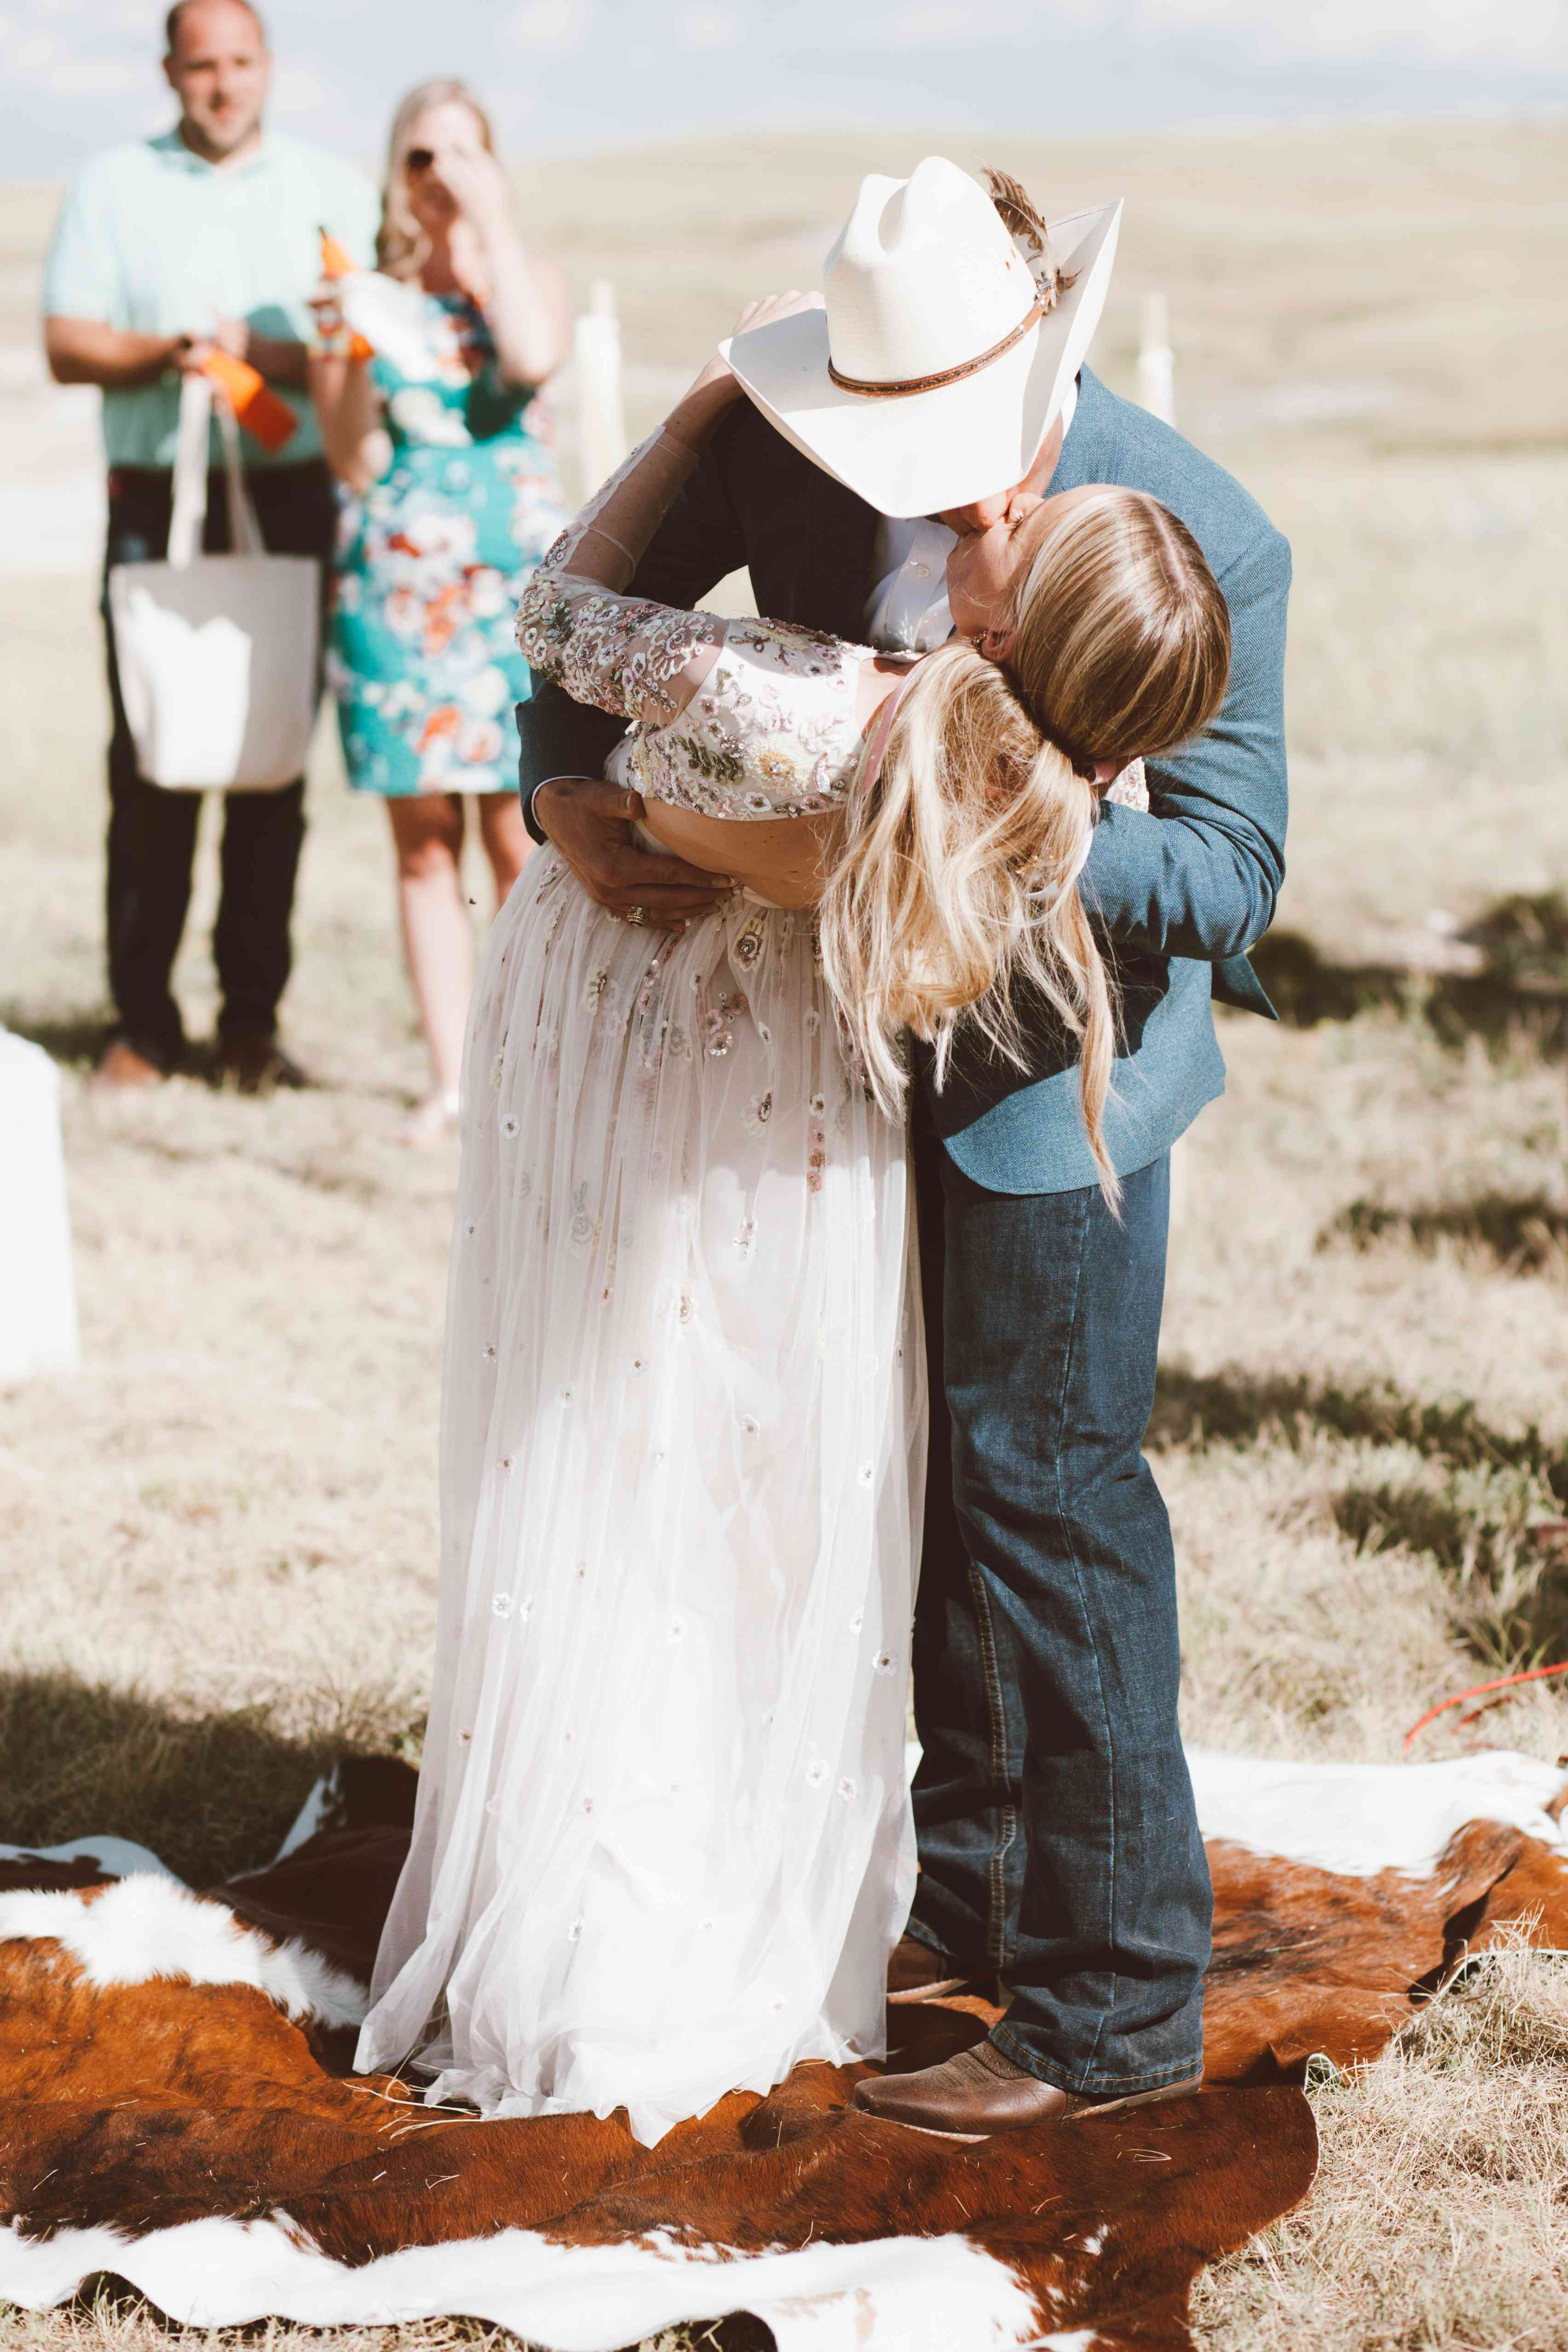 Western groom dipping bride for first kiss